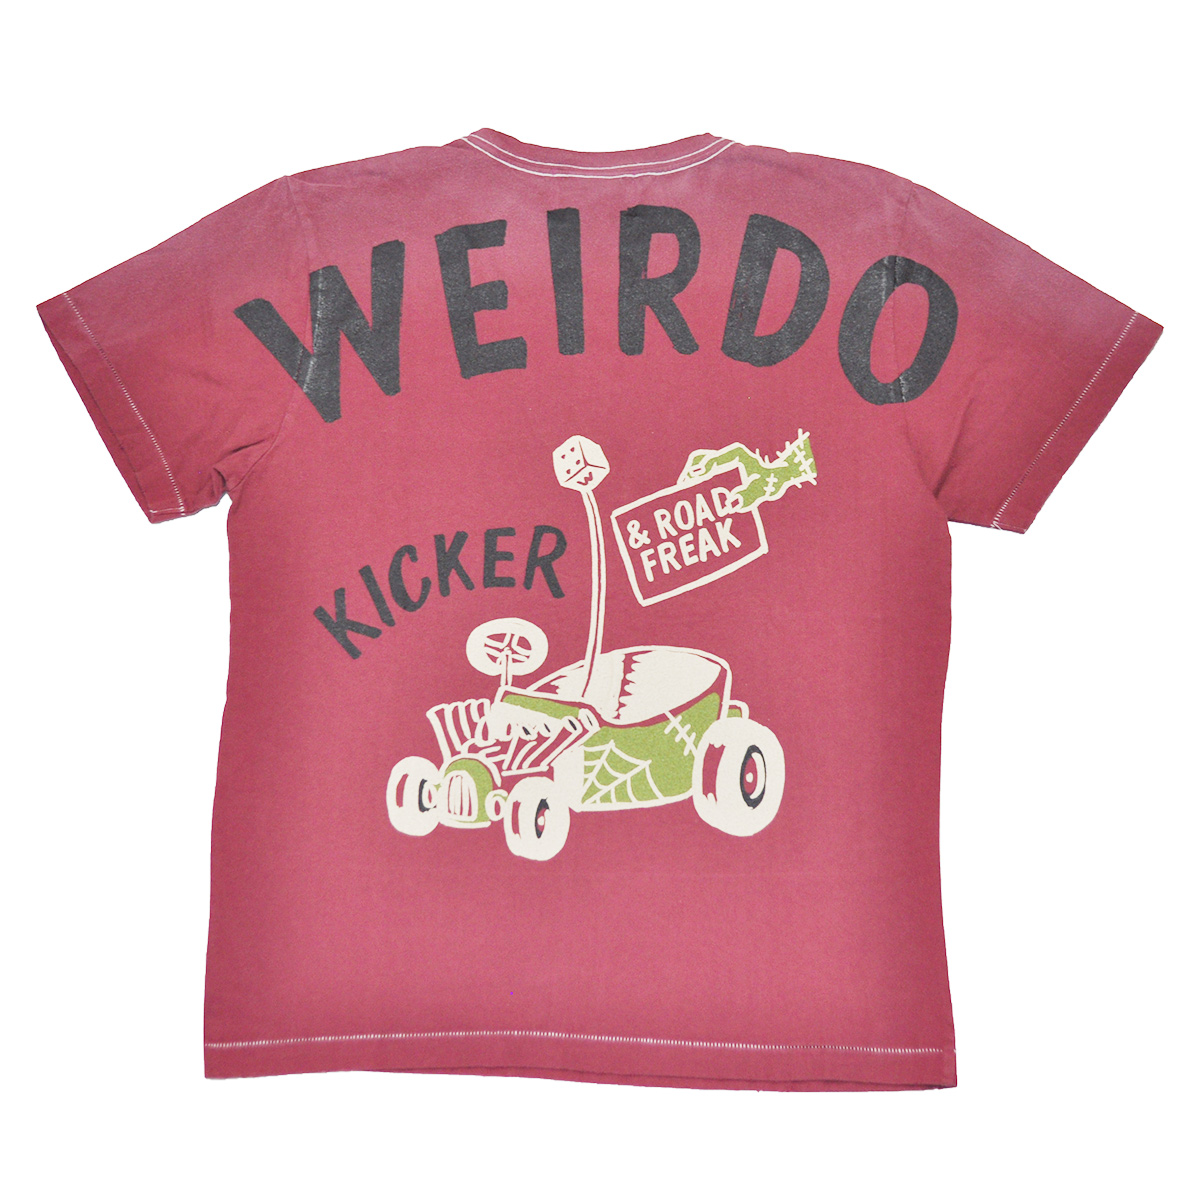 セール 40% OFF SALE WEIRDO ROAD FREAK KICKER - S/S T-SHIRTS (BURGUNDY)